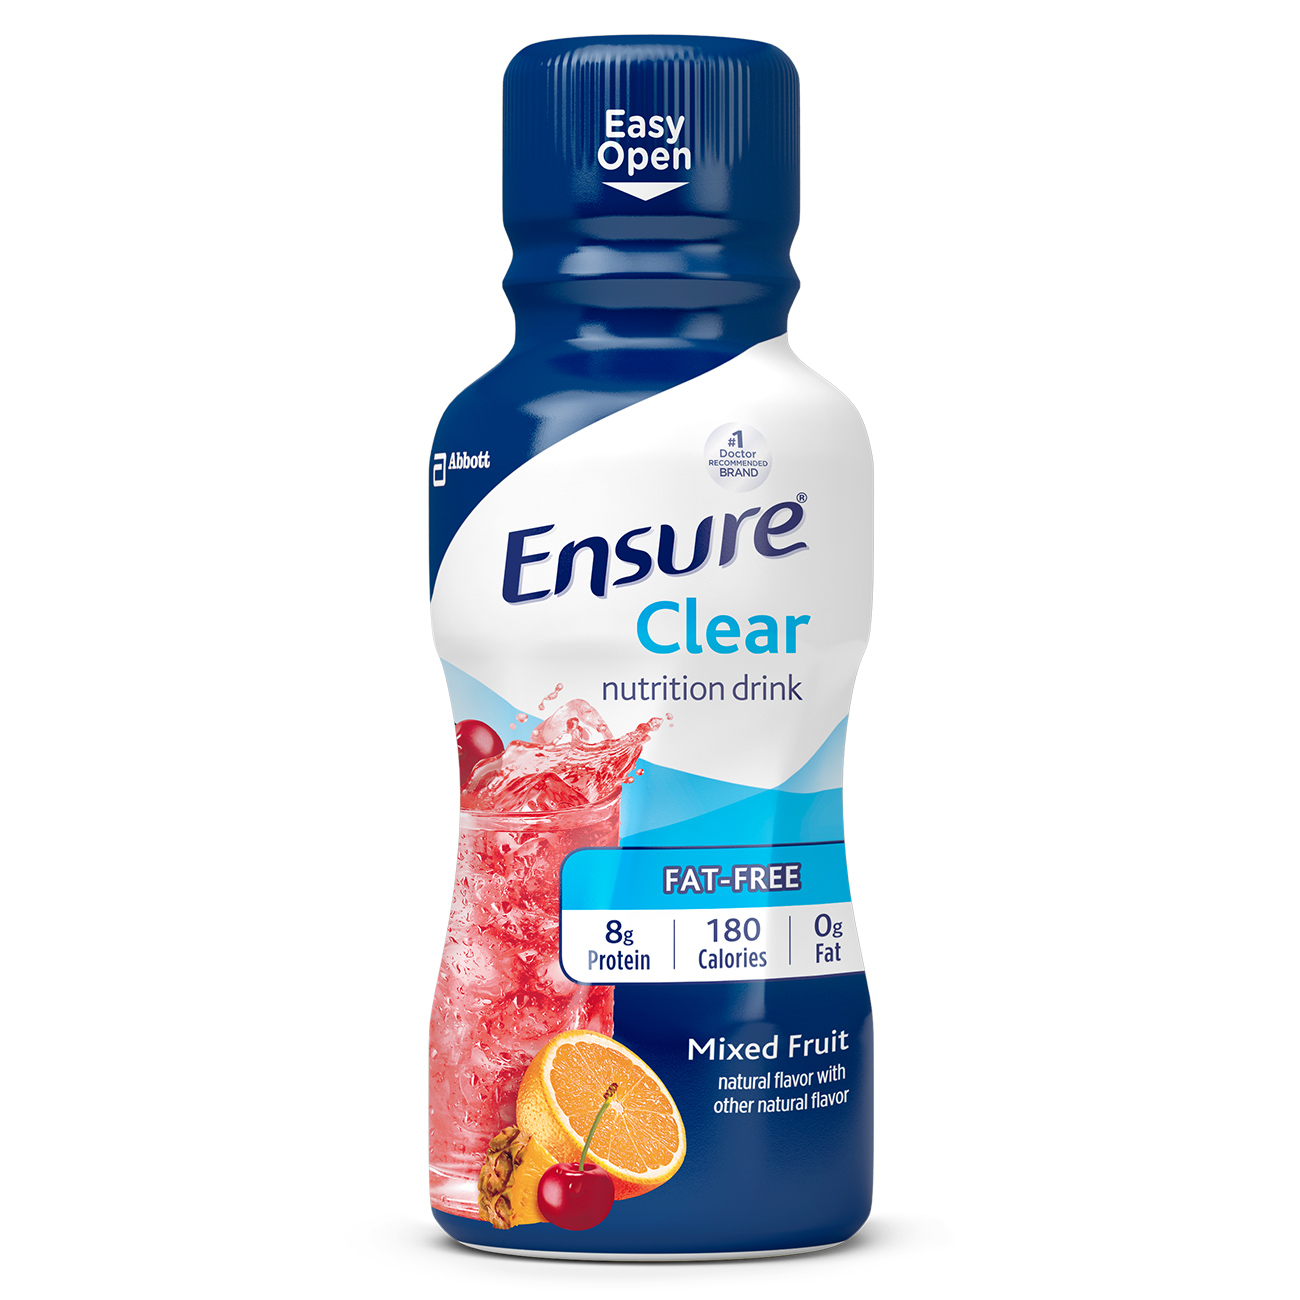 Ensure Clear Nutrition Drink, 0g fat, 8g of high-quality protein, Mixed Fruit, 10 Fl oz, 4 Ct